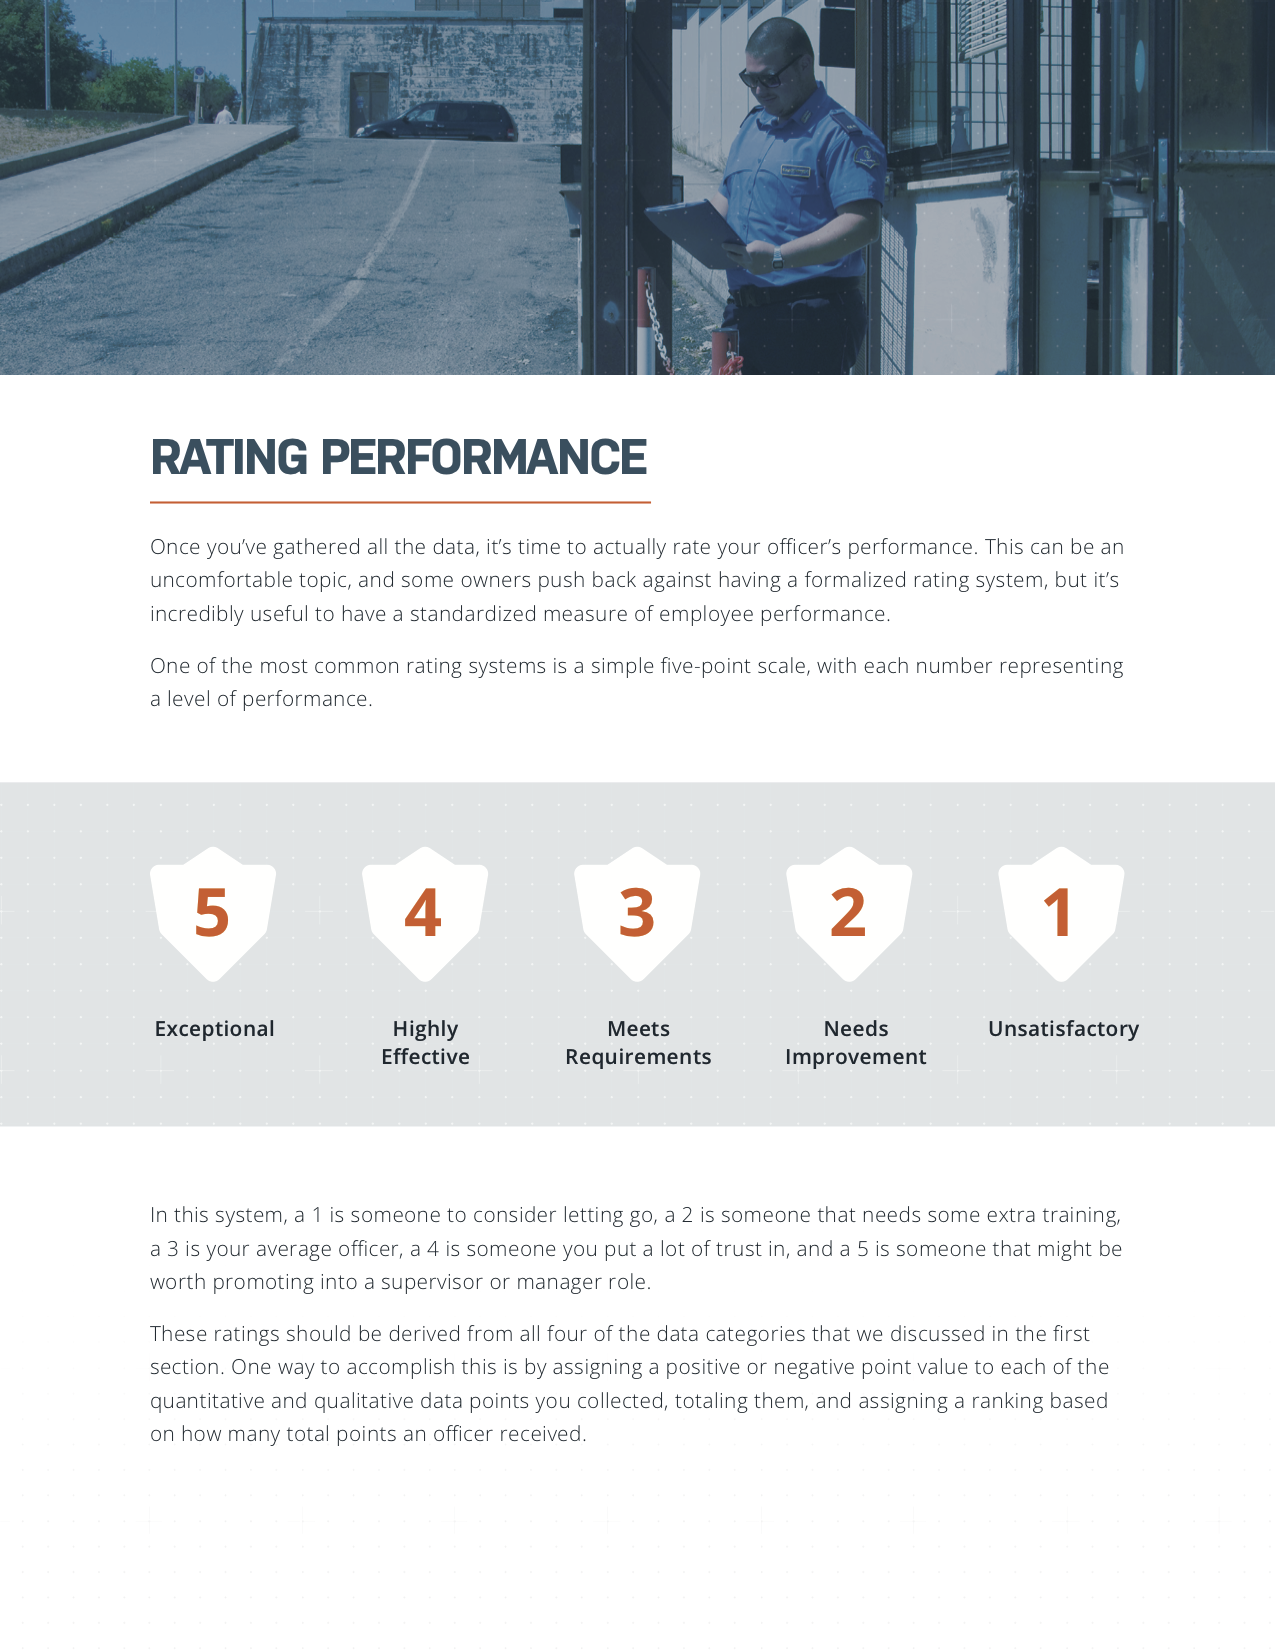 Evaluating Officer Performance eBook Page 2